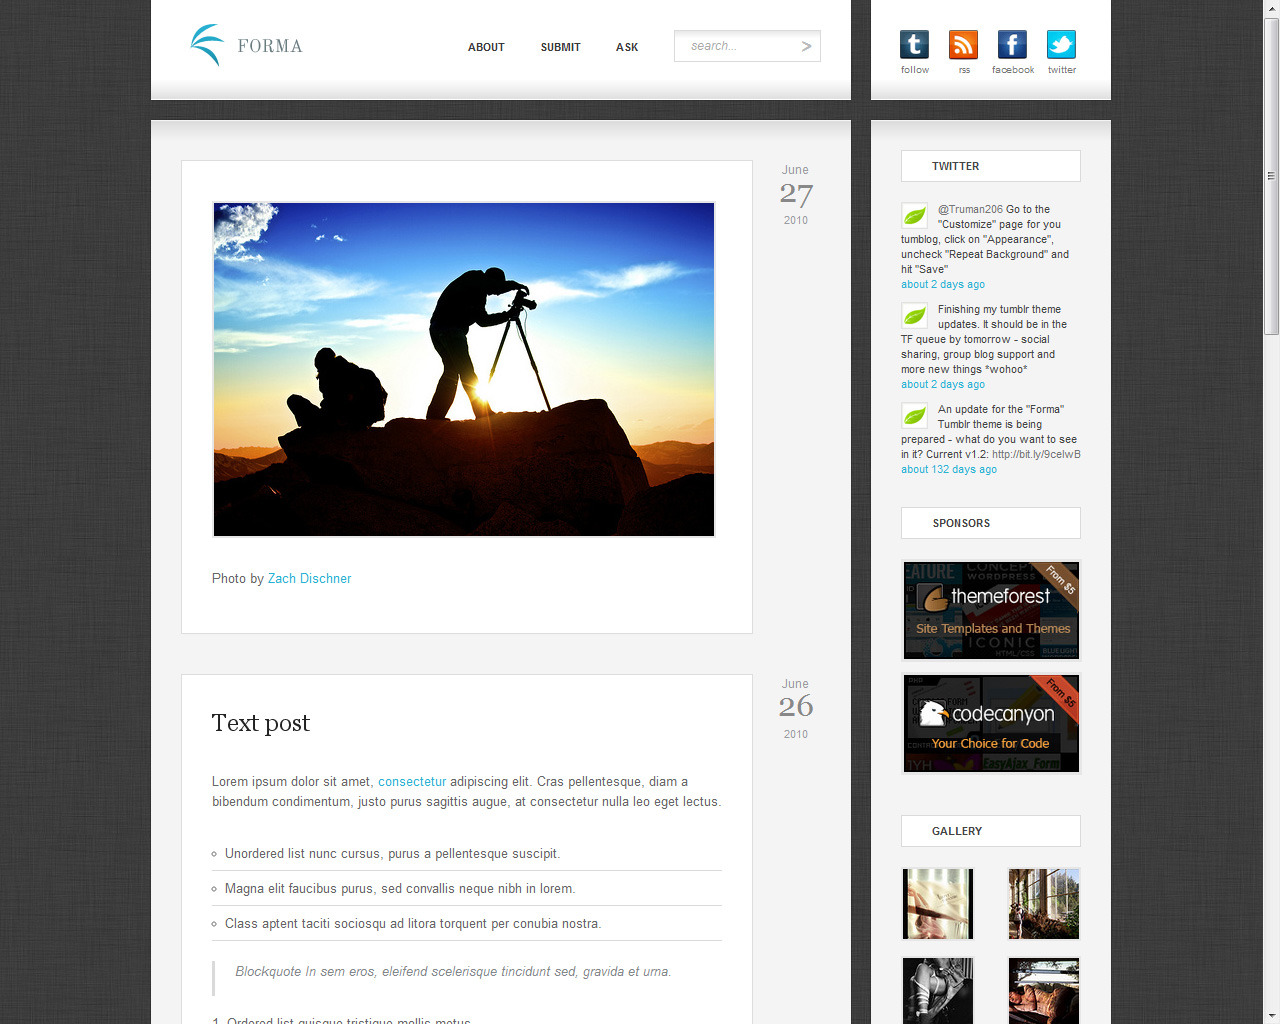 Forma - Premium Tumblr Theme - Index page with the &quot;linen&quot; texture pattern.